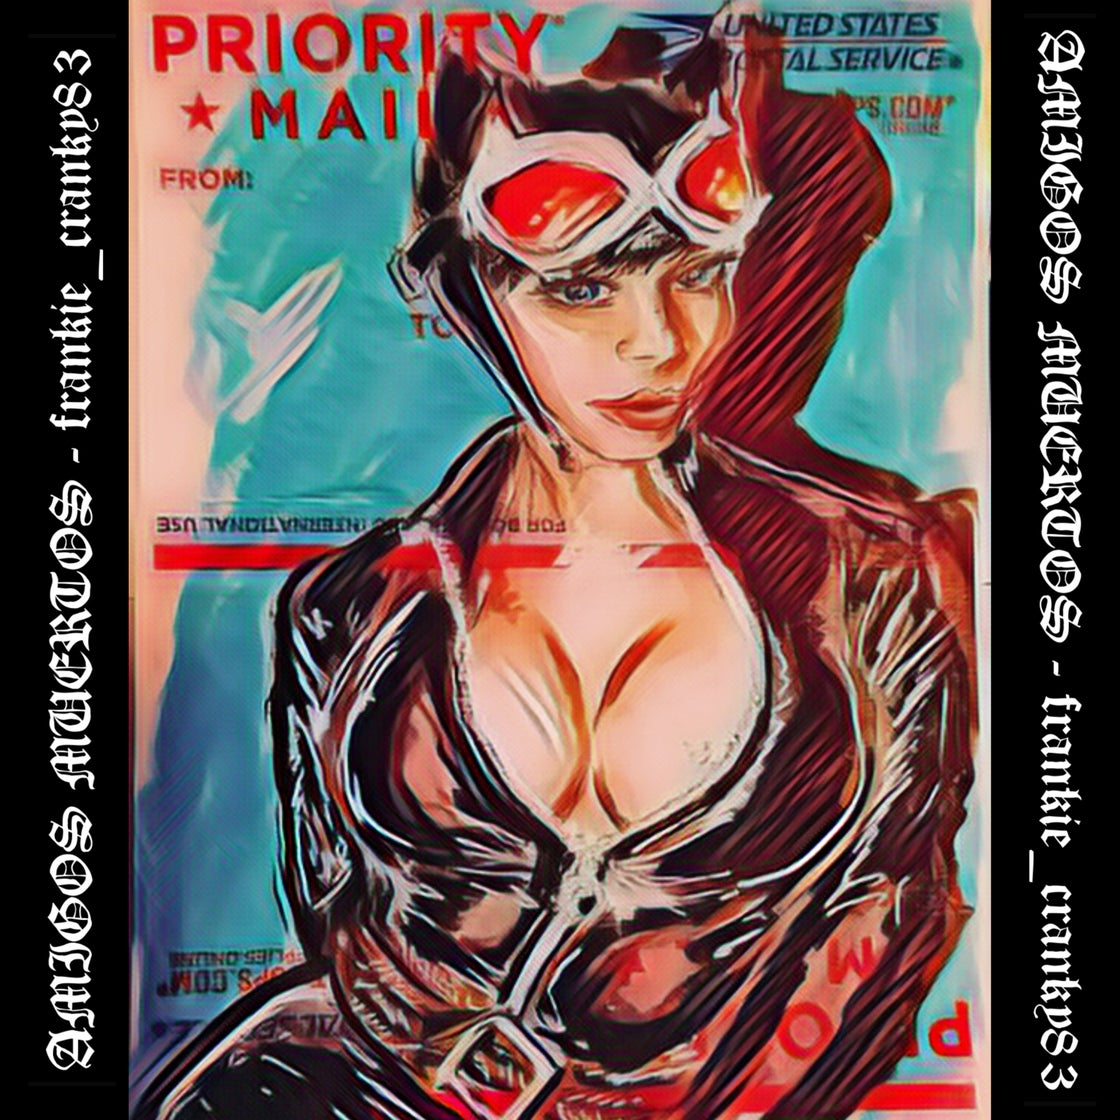 Image of Catwoman pinup Hologram